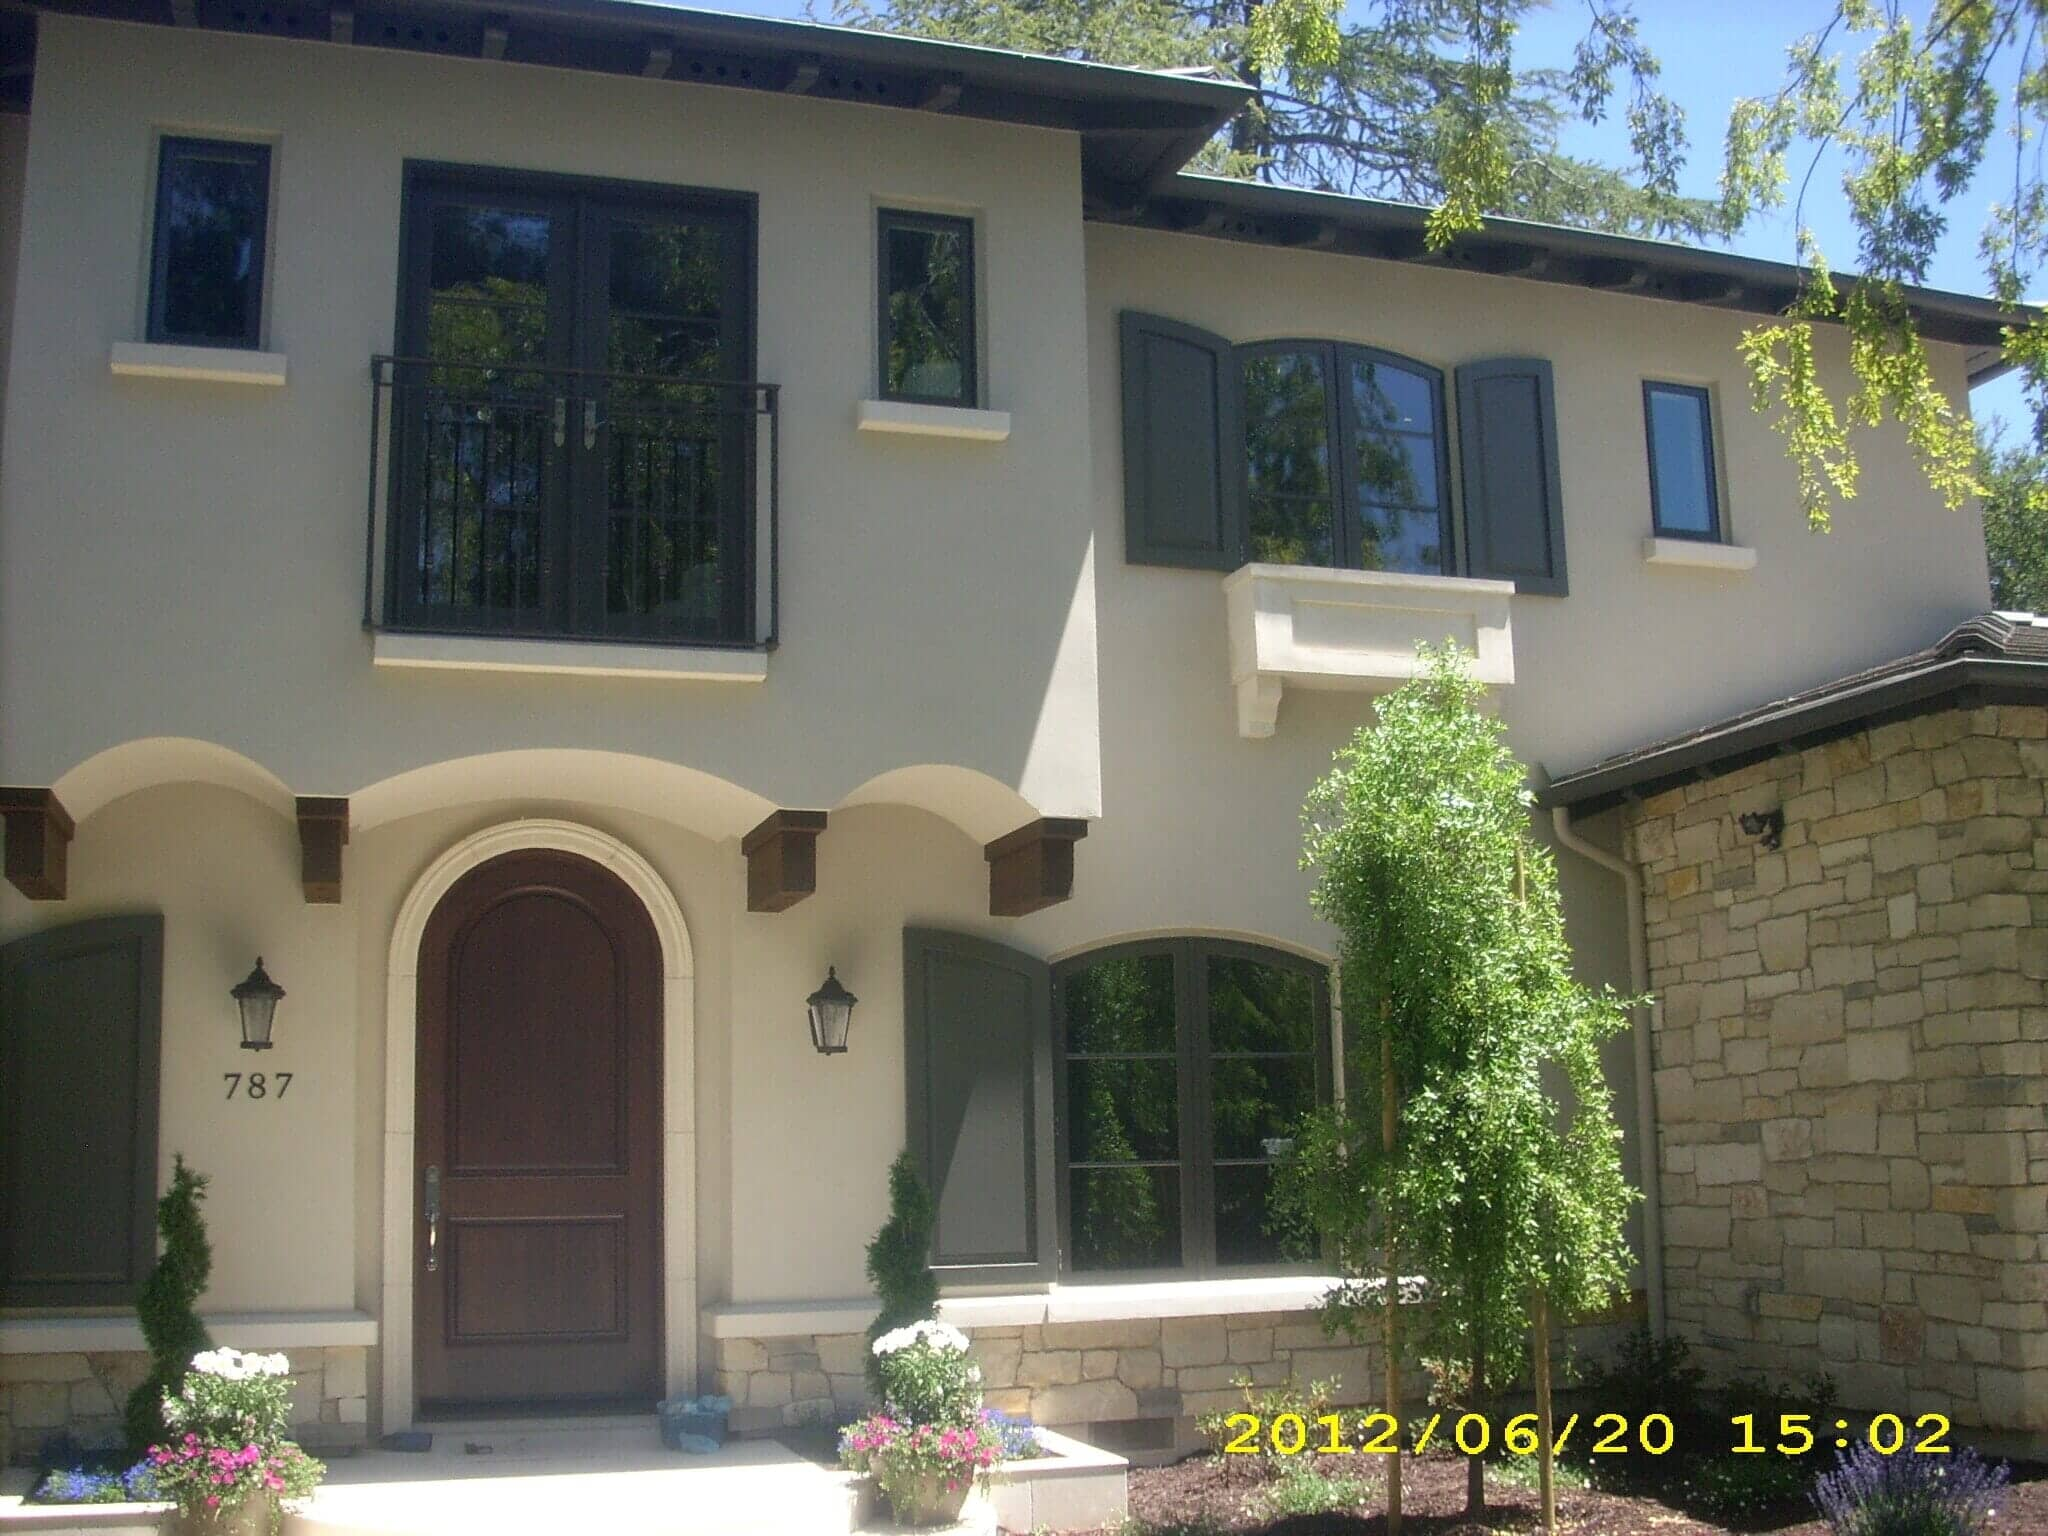 MKM LOT, Select Windows, Los Altos, California